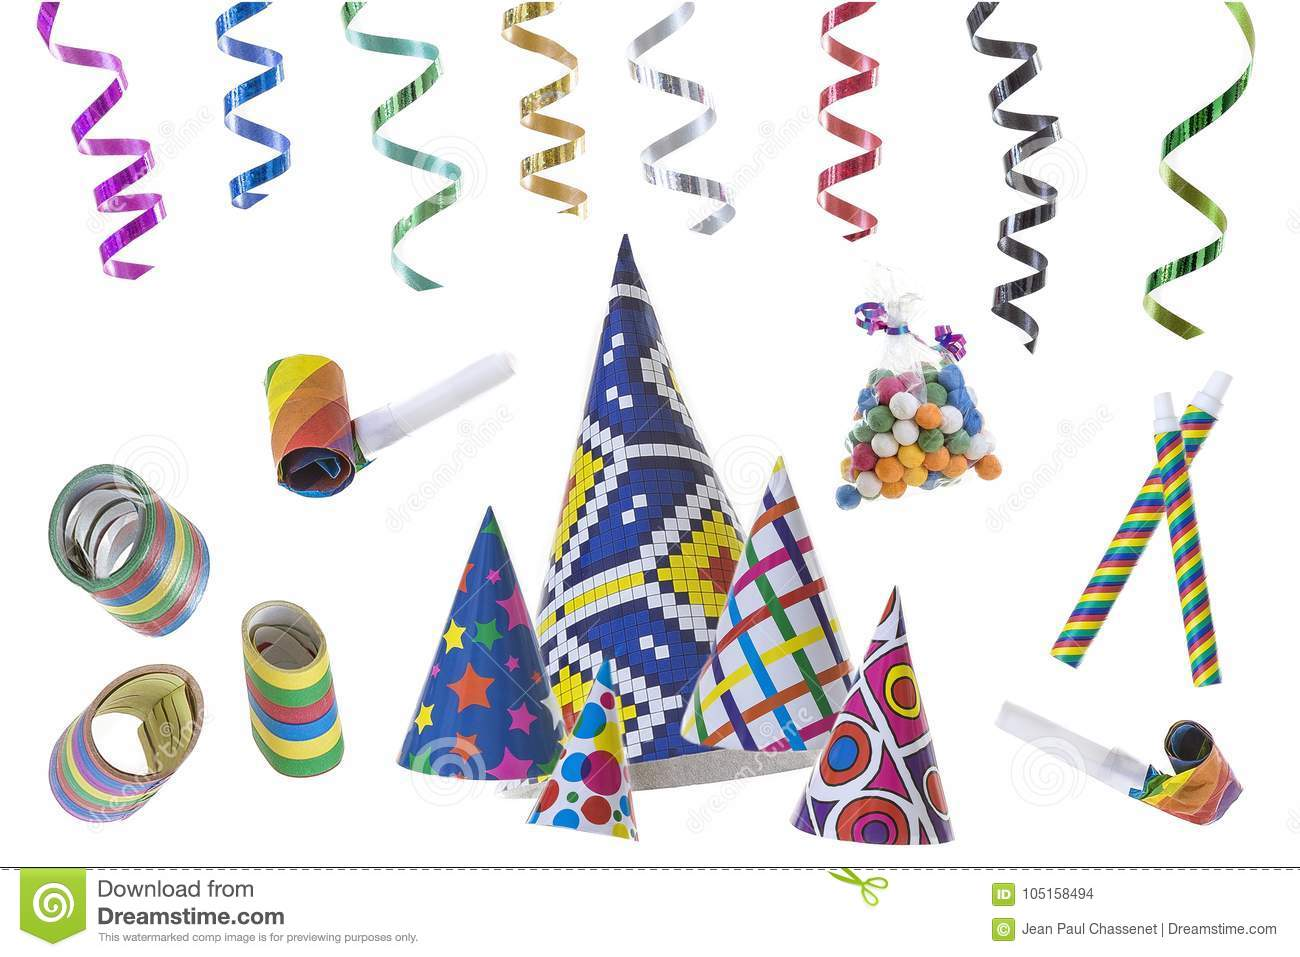 Festive image with rolls of curly ribbons hanging from top efts and multi party favors on the gound on black on the